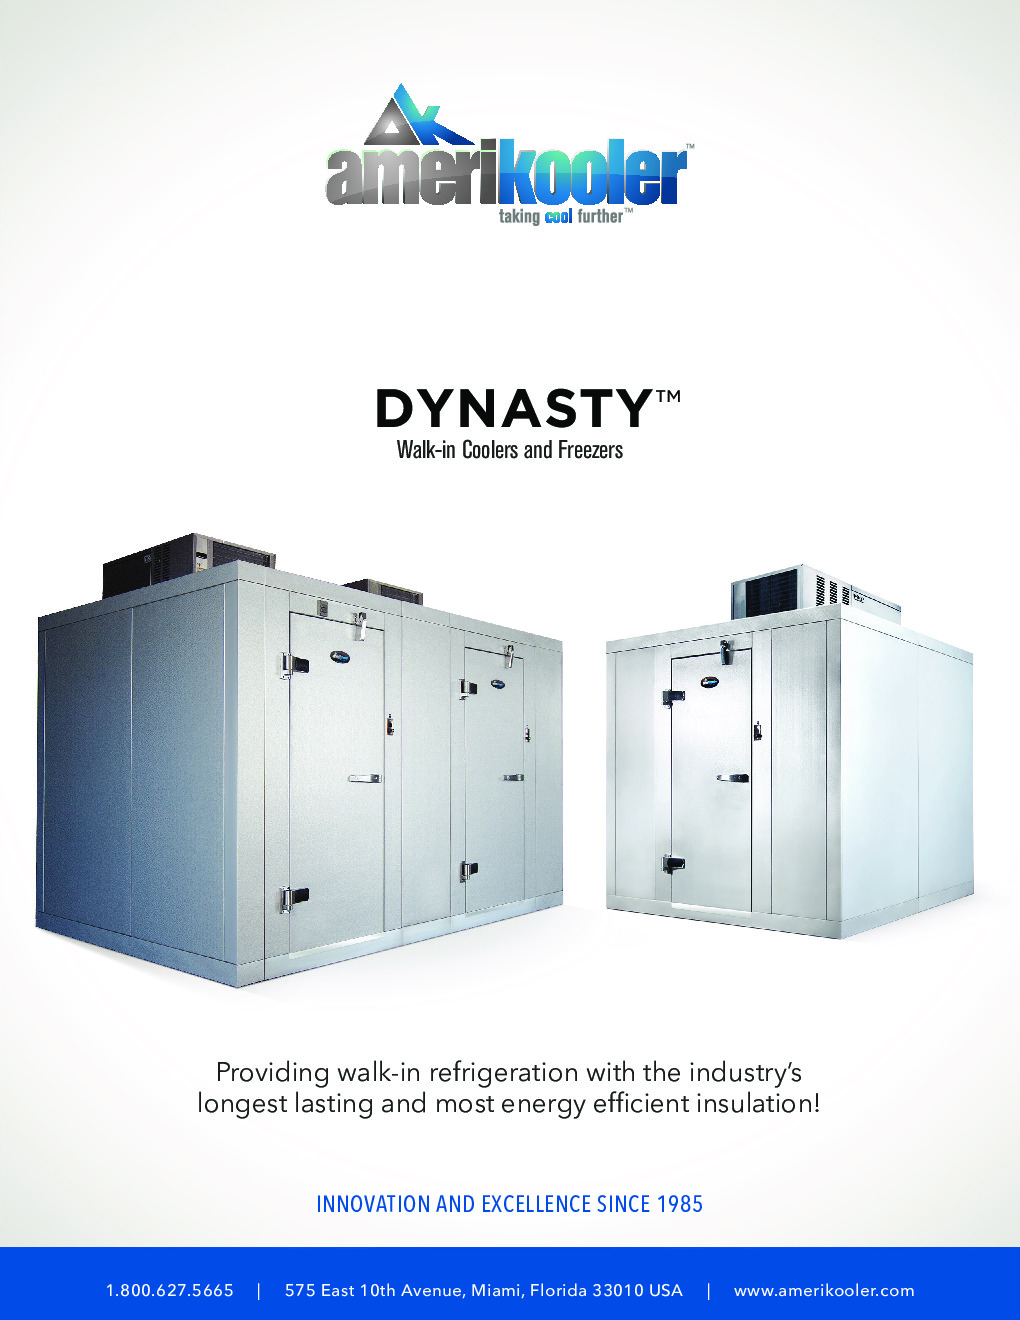 AmeriKooler DW081177N-4/7-RM 8' X 11' Walk-In Cooler, 7' L Cooler without Floor and 4' L Freezer, Remote